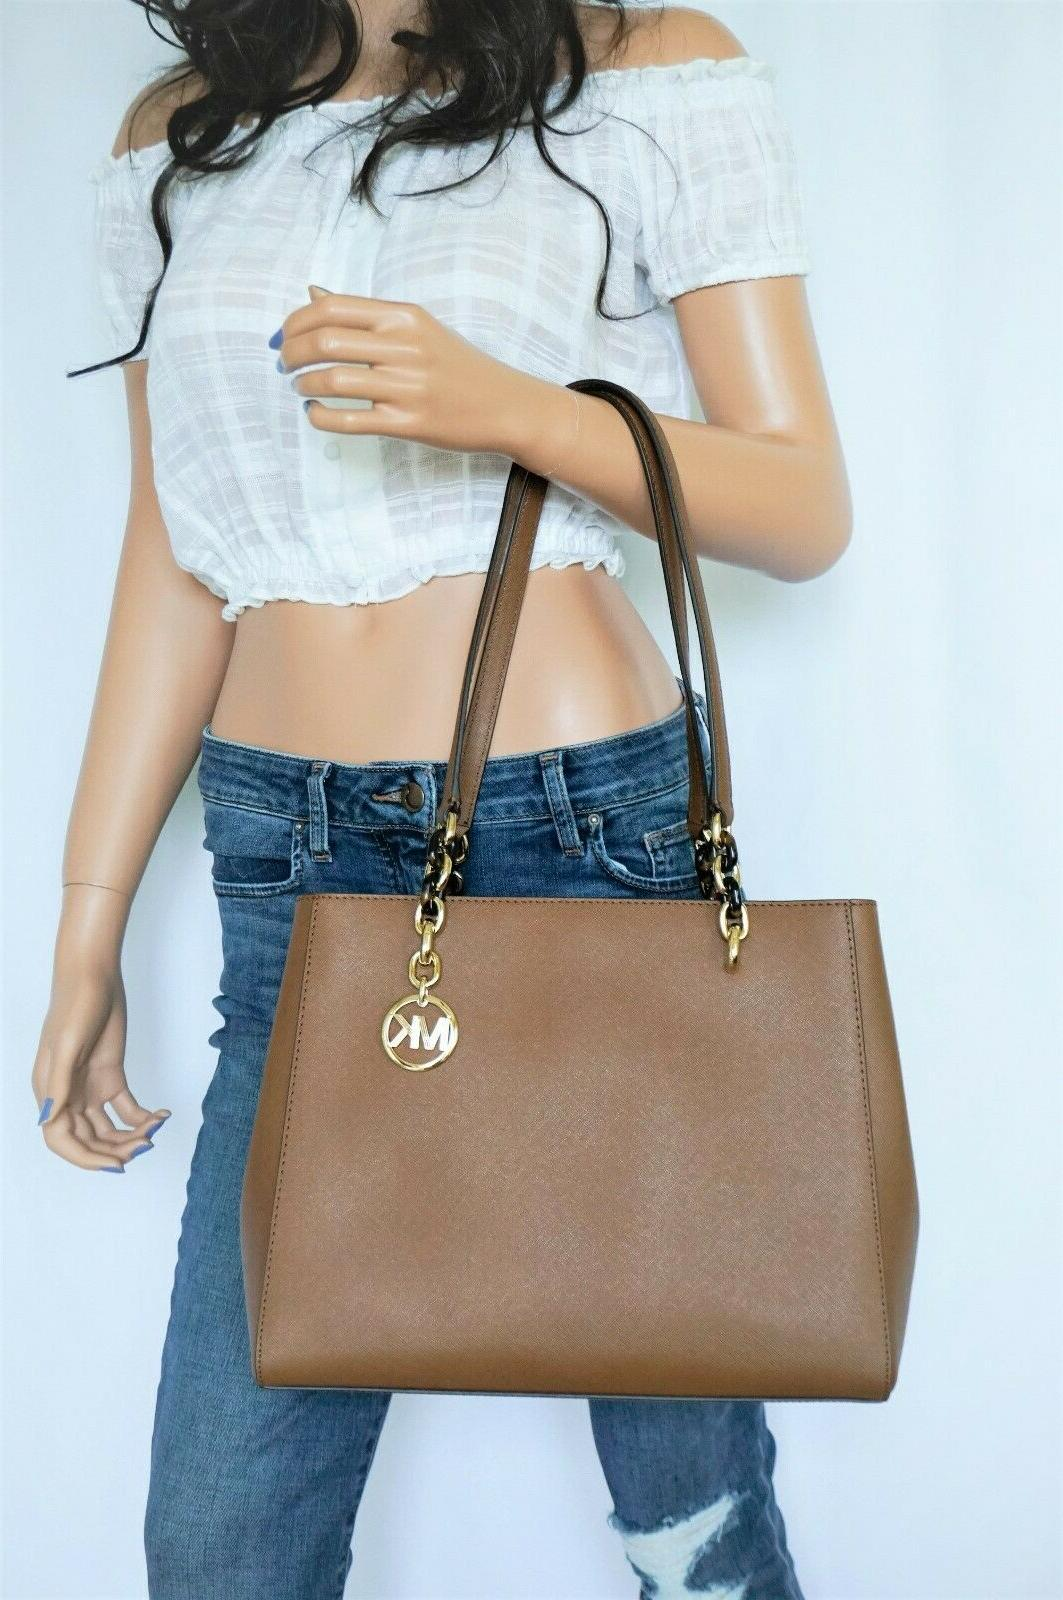 MICHAEL KORS SOFIA LARGE SAFFIANO LEATHER